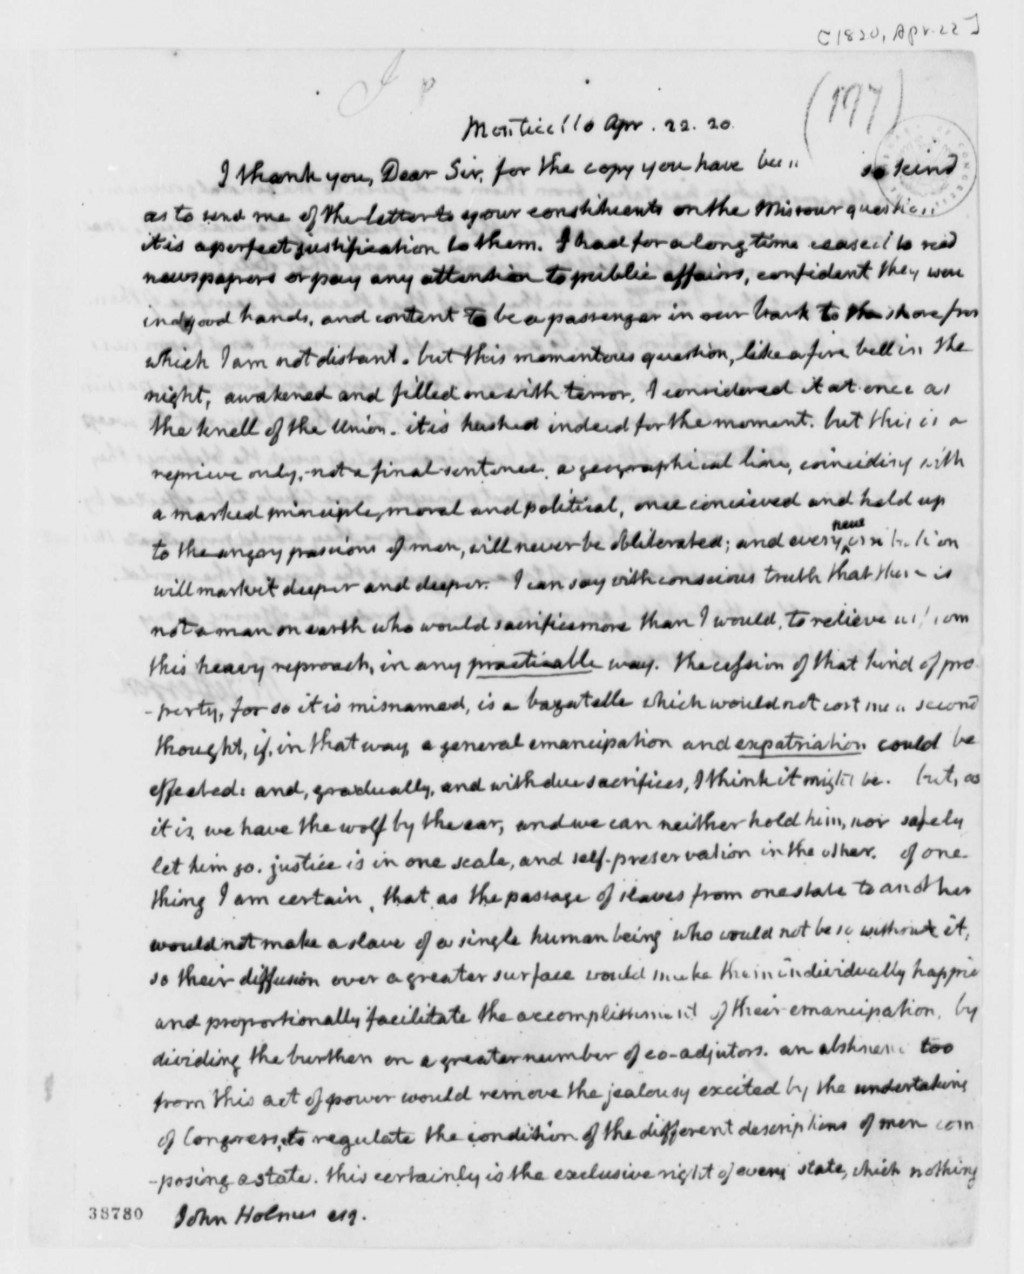 003 Thomas Jefferson Essay Example Magnificent On Education Questions Outline Large